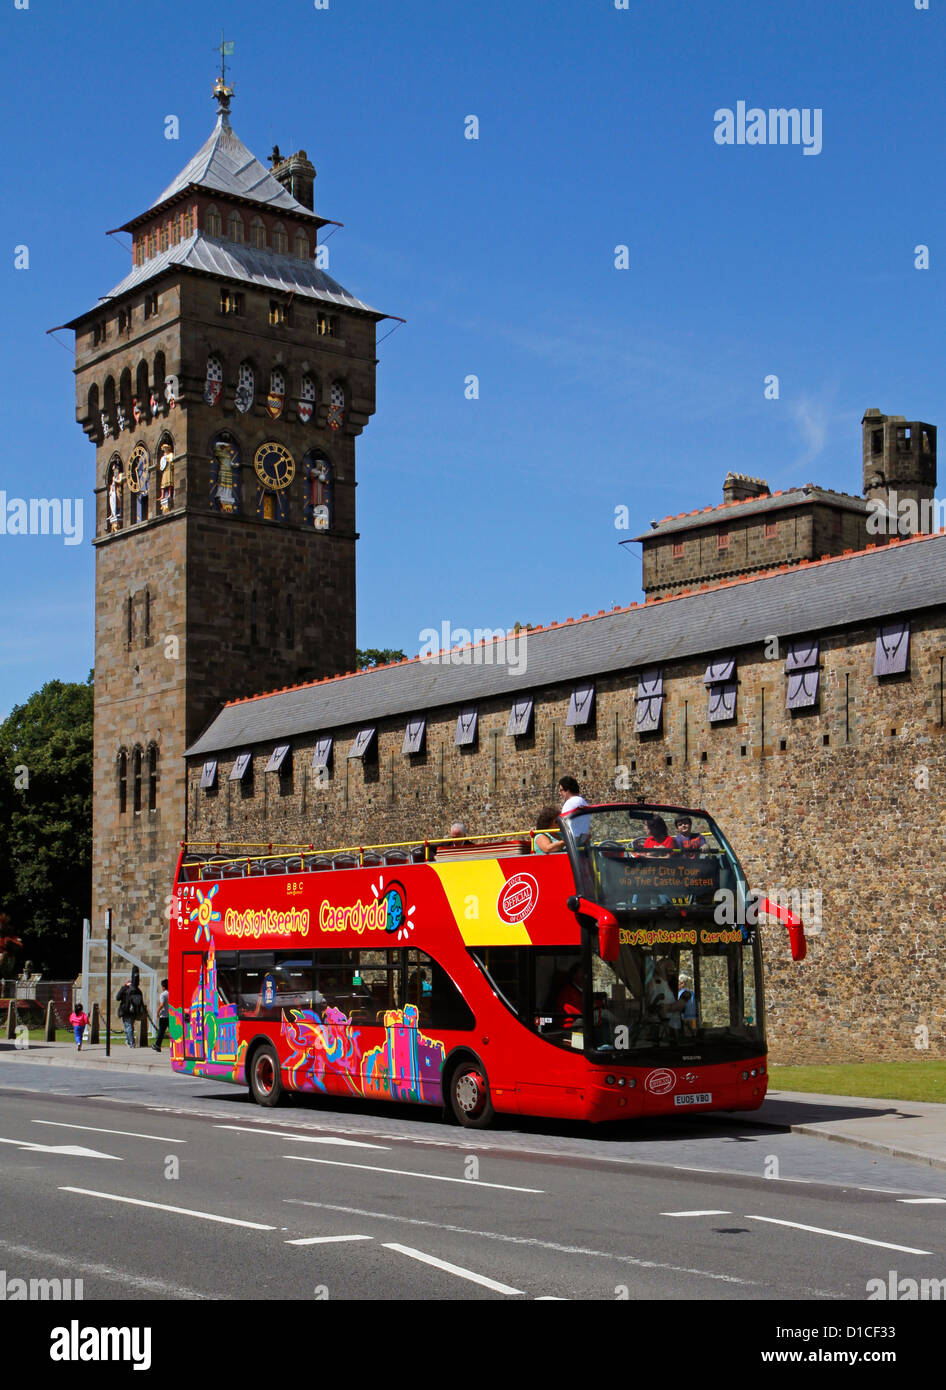 Tourist sightseeing bus outside Cardiff Castle, Cardiff, Wales, UK - Stock Image